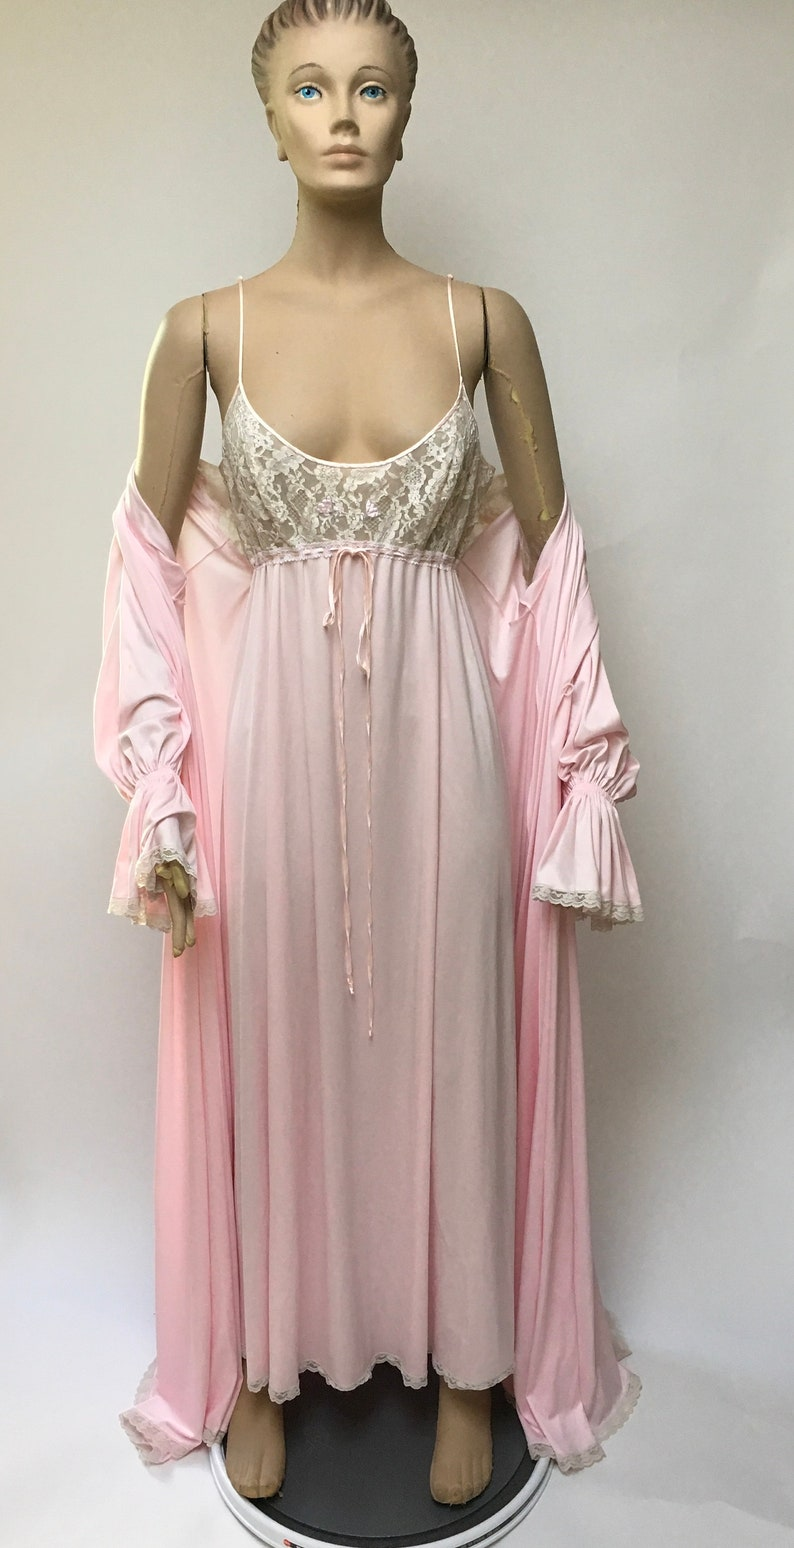 Lucie Ann Pink Nightgown Robe Set Claire Sandra Beverly Hills Peignoir  Wedding Pin Up Vintage Lingerie 5fef78bb8